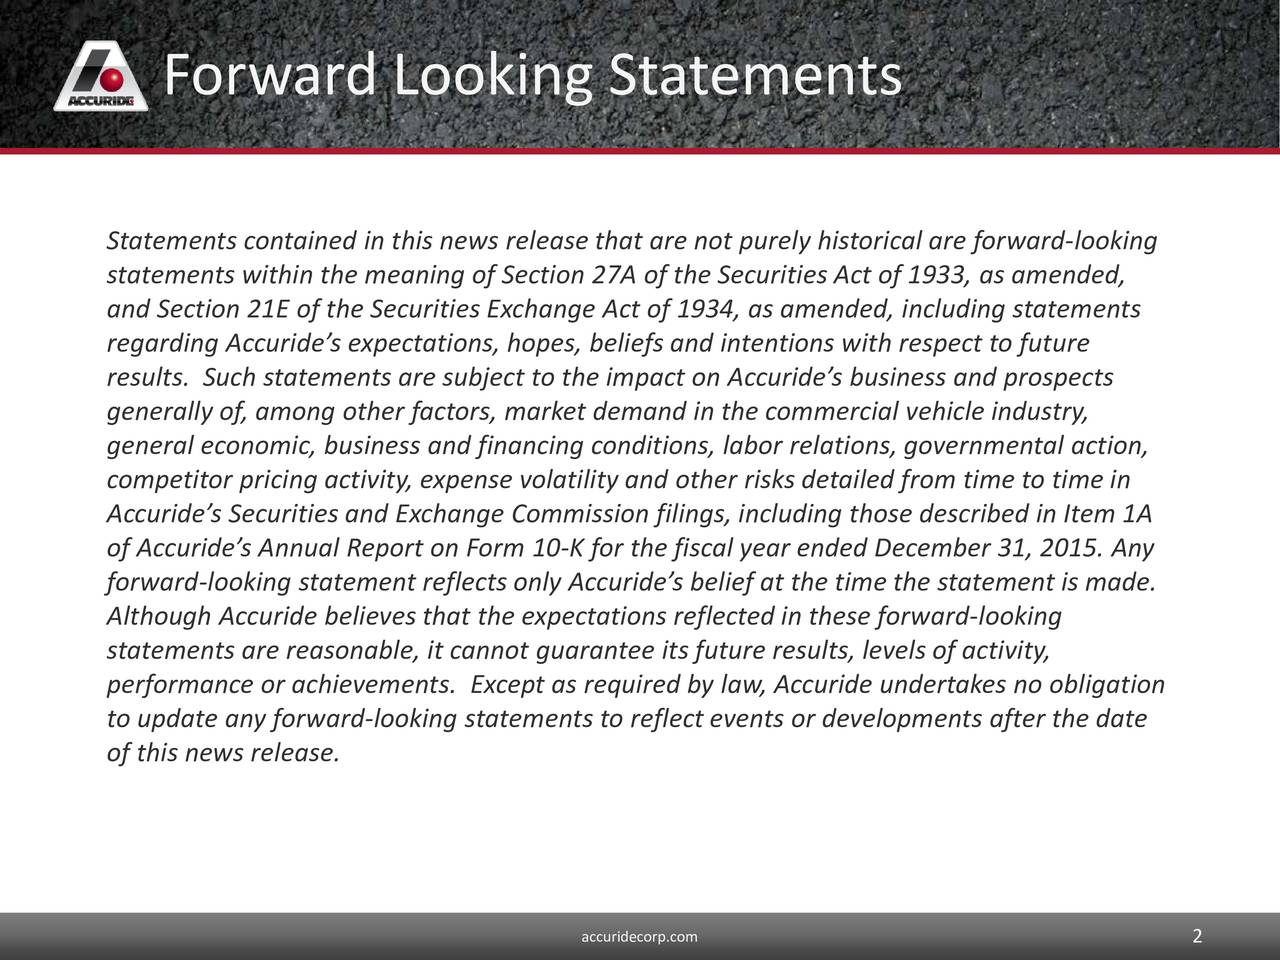 Statements contained in this news release that are not purely historical are forward-looking statements within the meaning of Section 27A of the Securities Act of 1933, as amended, and Section 21E of the Securities Exchange Act of 1934, as amended, including statements regarding Accurides expectations, hopes, beliefs and intentions with respect to future results. Such statements are subject to the impact on Accurides business and prospects generally of, among other factors, market demand in the commercial vehicle industry, general economic, business and financing conditions, labor relations, governmental action, competitor pricing activity, expense volatility and other risks detailed from time to time in Accurides Securities and Exchange Commission filings, including those described in Item 1A of Accurides Annual Report on Form 10-K for the fiscal year ended December 31, 2015. Any forward-looking statement reflects only Accurides belief at the time the statement is made. Although Accuride believes that the expectations reflected in these forward-looking statements are reasonable, it cannot guarantee its future results, levels of activity, performance or achievements. Except as required by law, Accuride undertakes no obligation to update any forward-looking statements to reflect events or developments after the date of this news release. accuridecorp.com 2